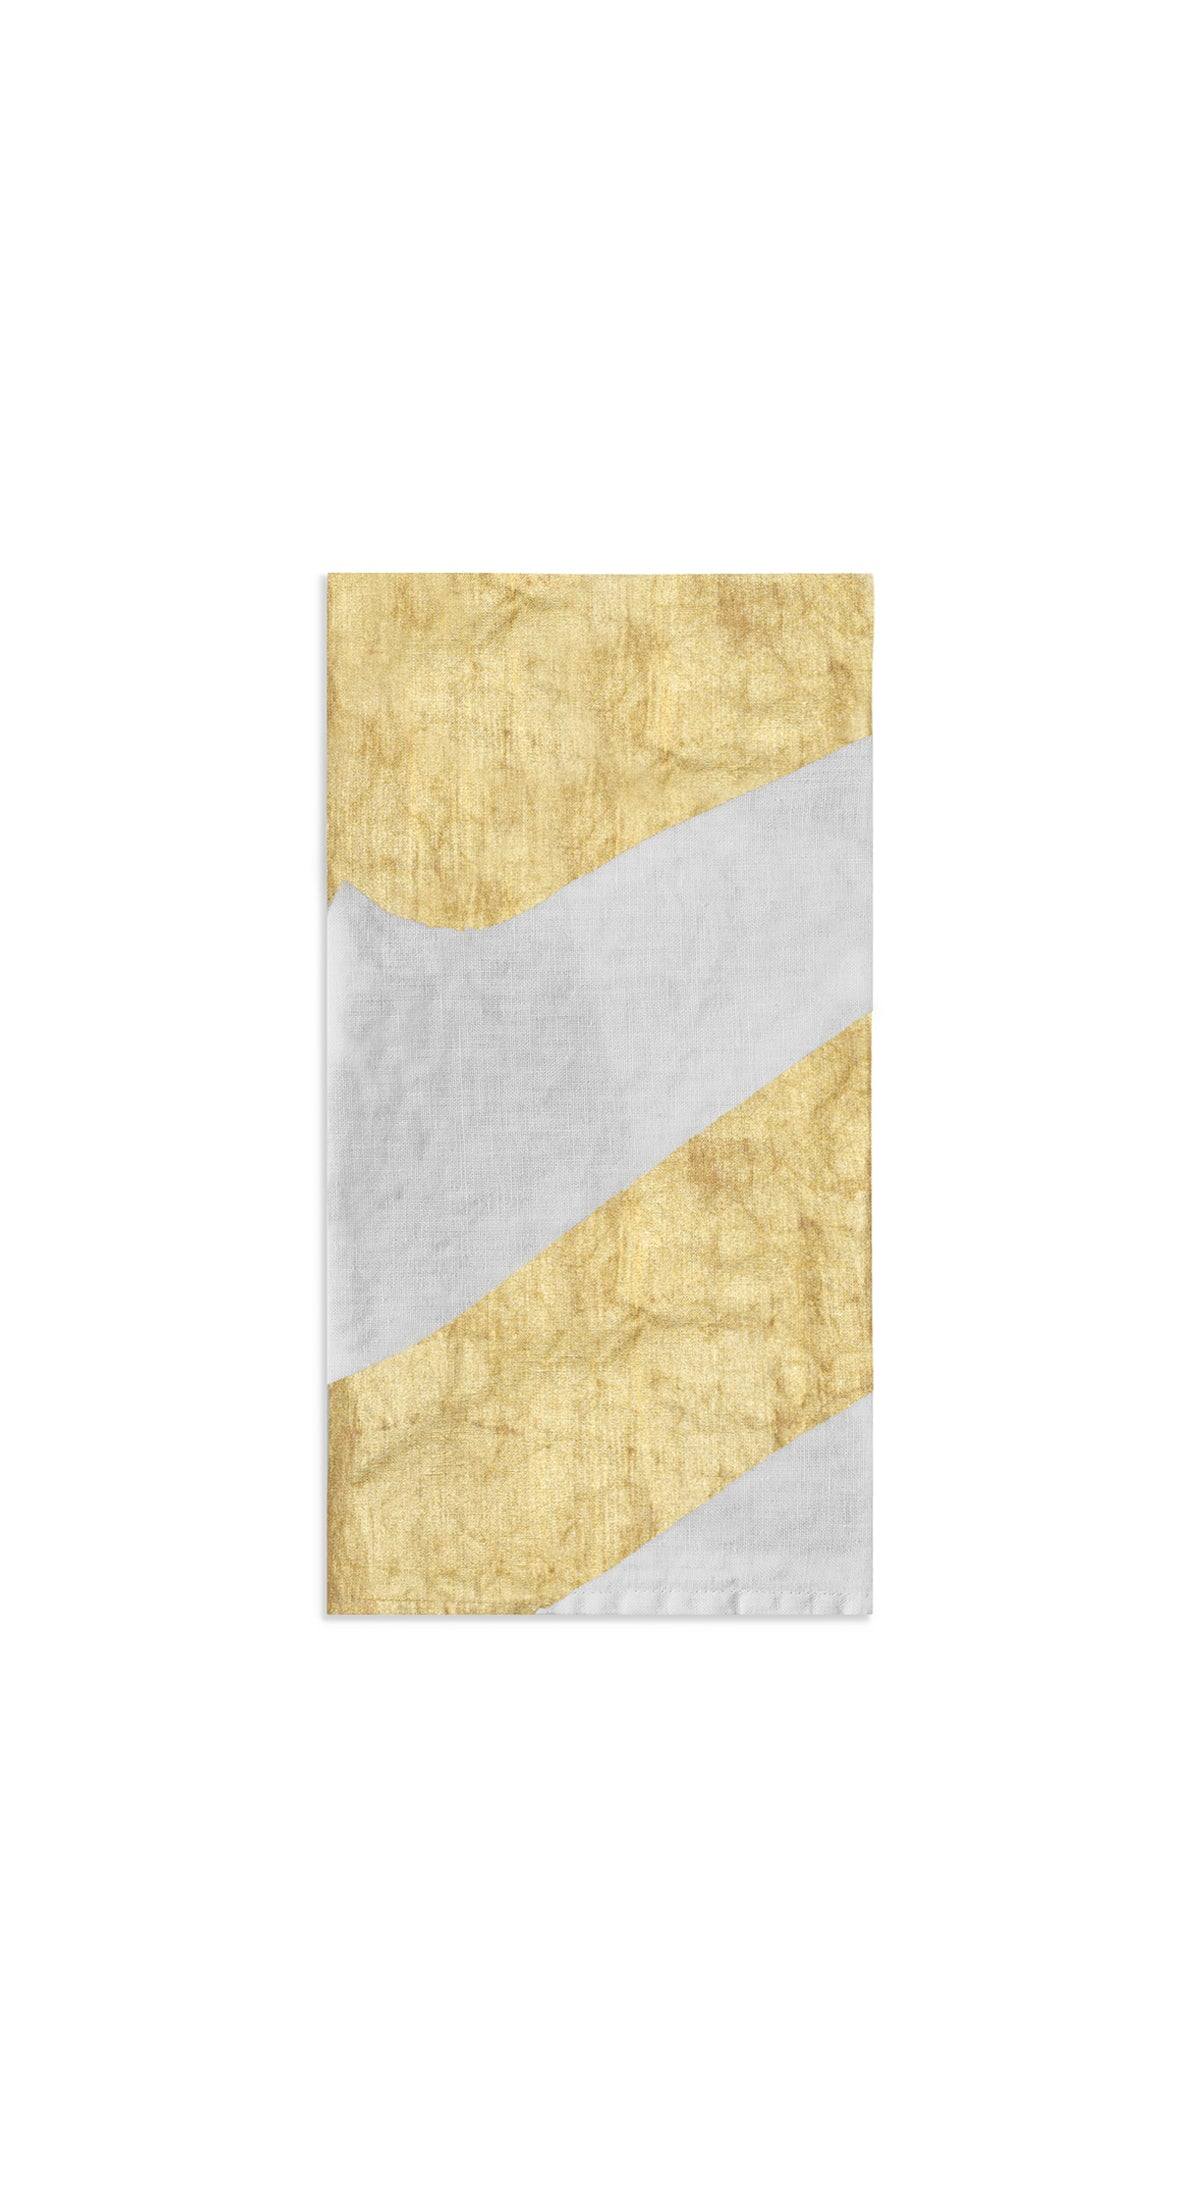 Alphabet Napkin 'B' in Gold